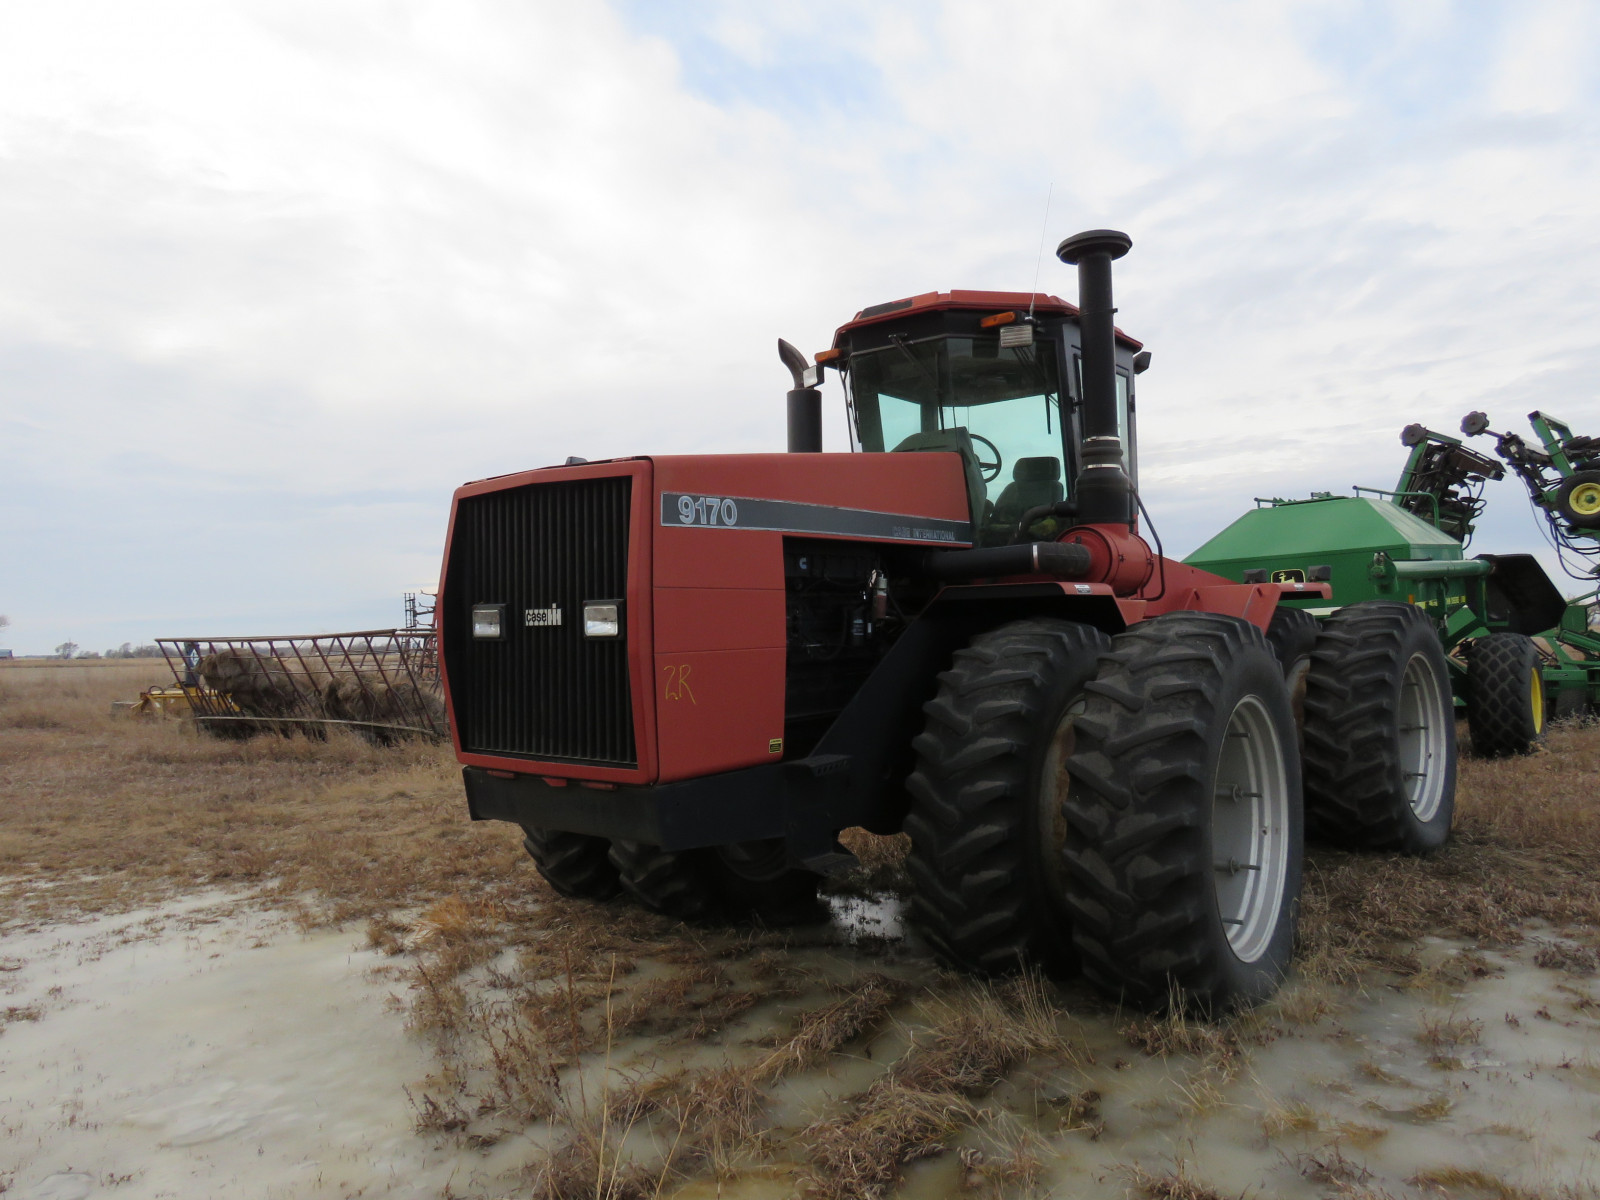 Case-IH 9170 4WD Tractor 9170 JCB0002613 - Image 1